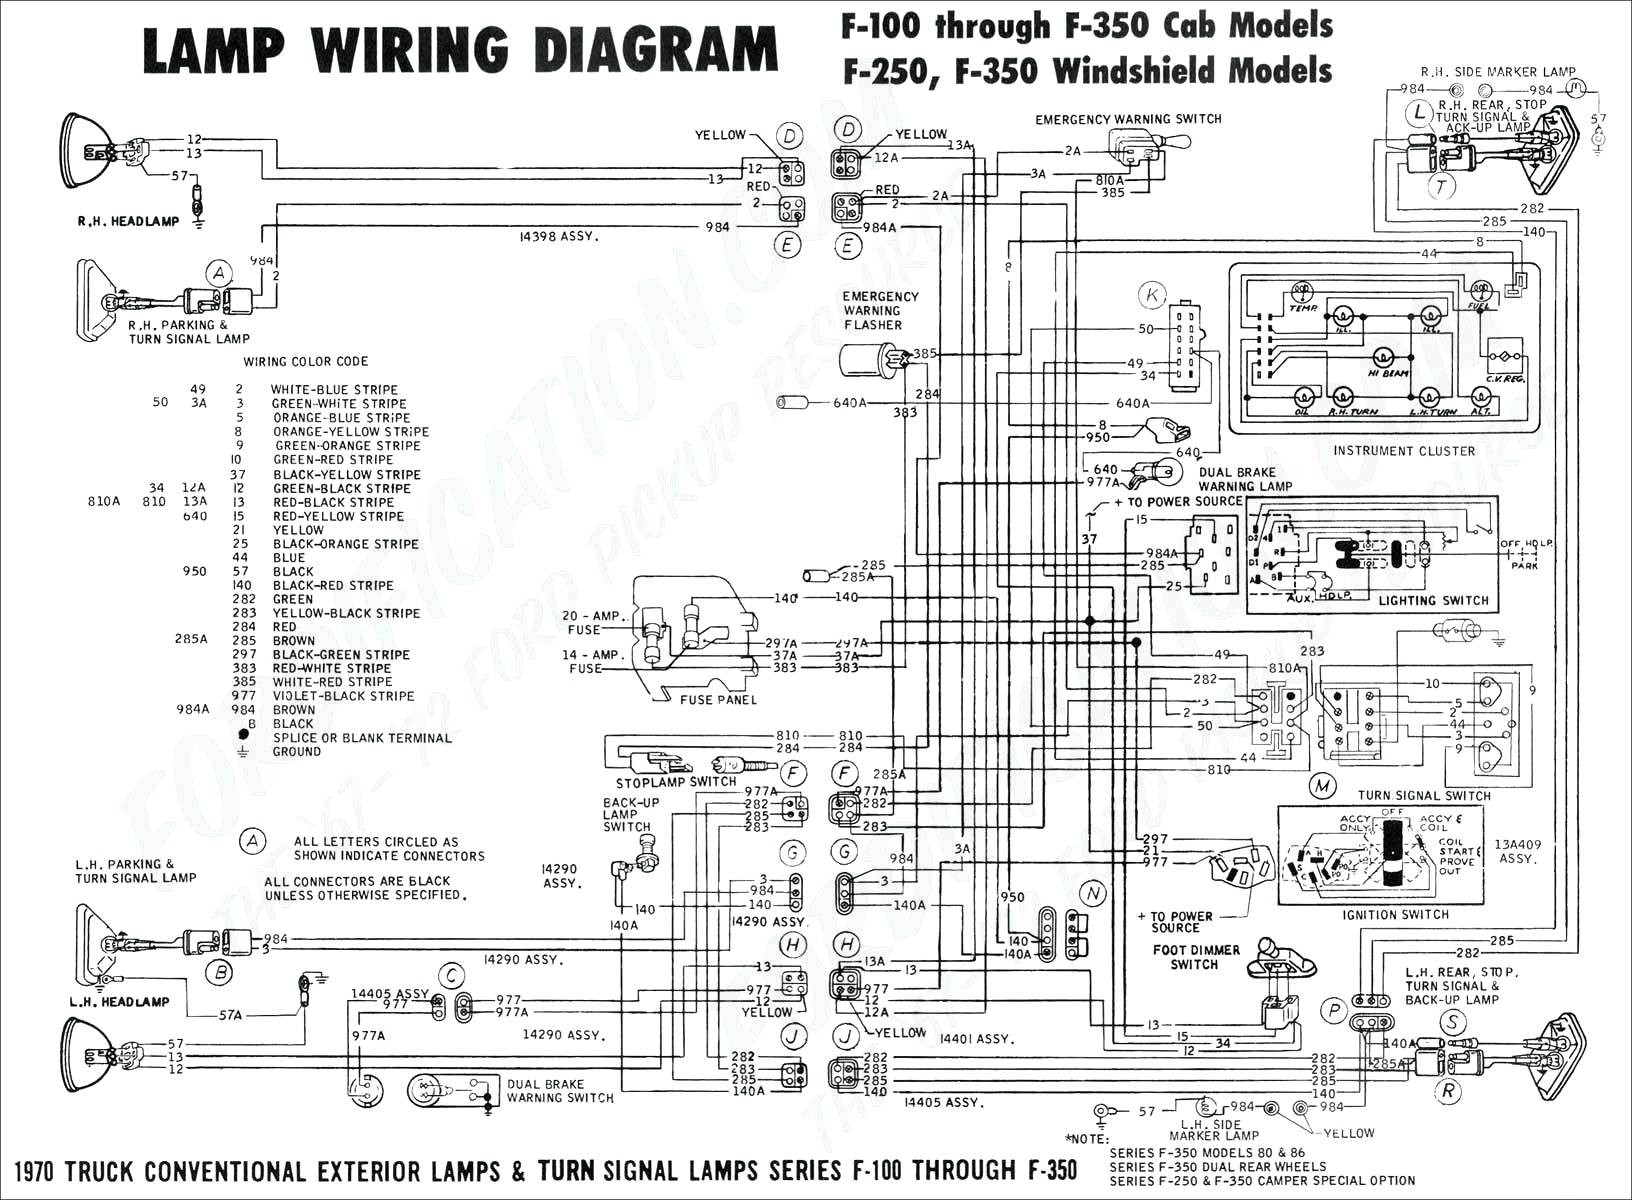 7 Wire Trailer Plug Diagram 450 Fuse Box Diagram Moreover 7 Wire Trailer Wiring Diagram as Of 7 Wire Trailer Plug Diagram Wiring Diagram for Rv Plug Save 7 Wire Trailer Plug Diagram New Best